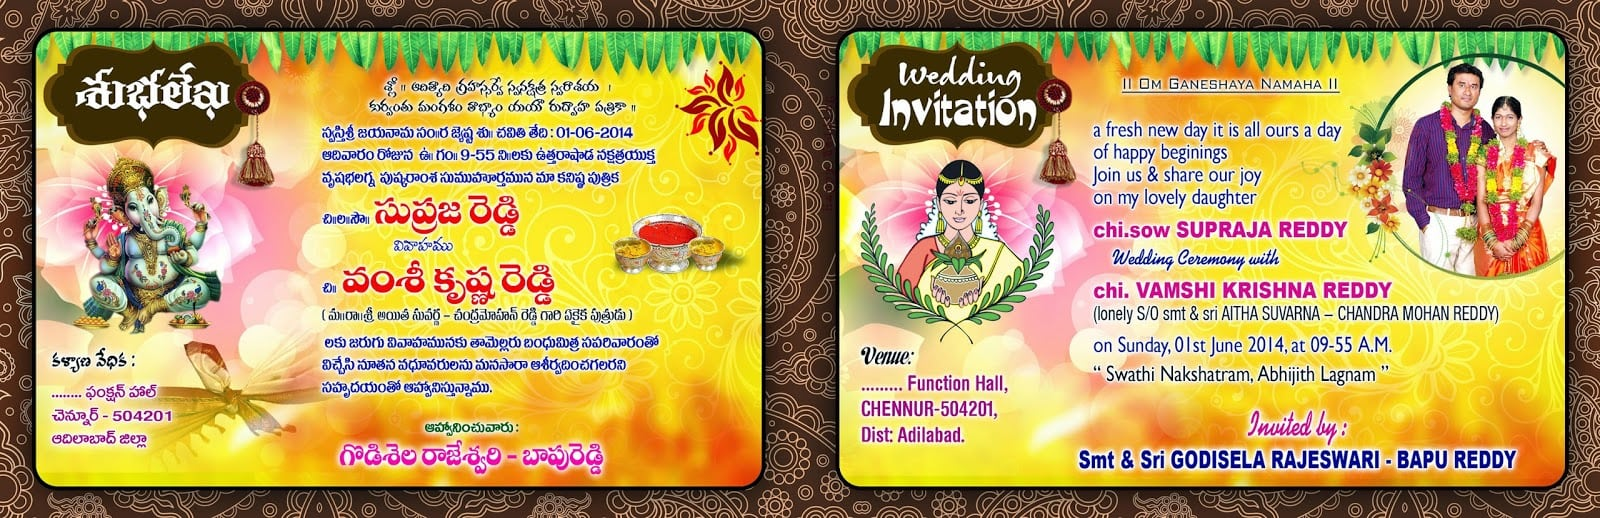 Wedding Invitation Cards Psd Files Free Download